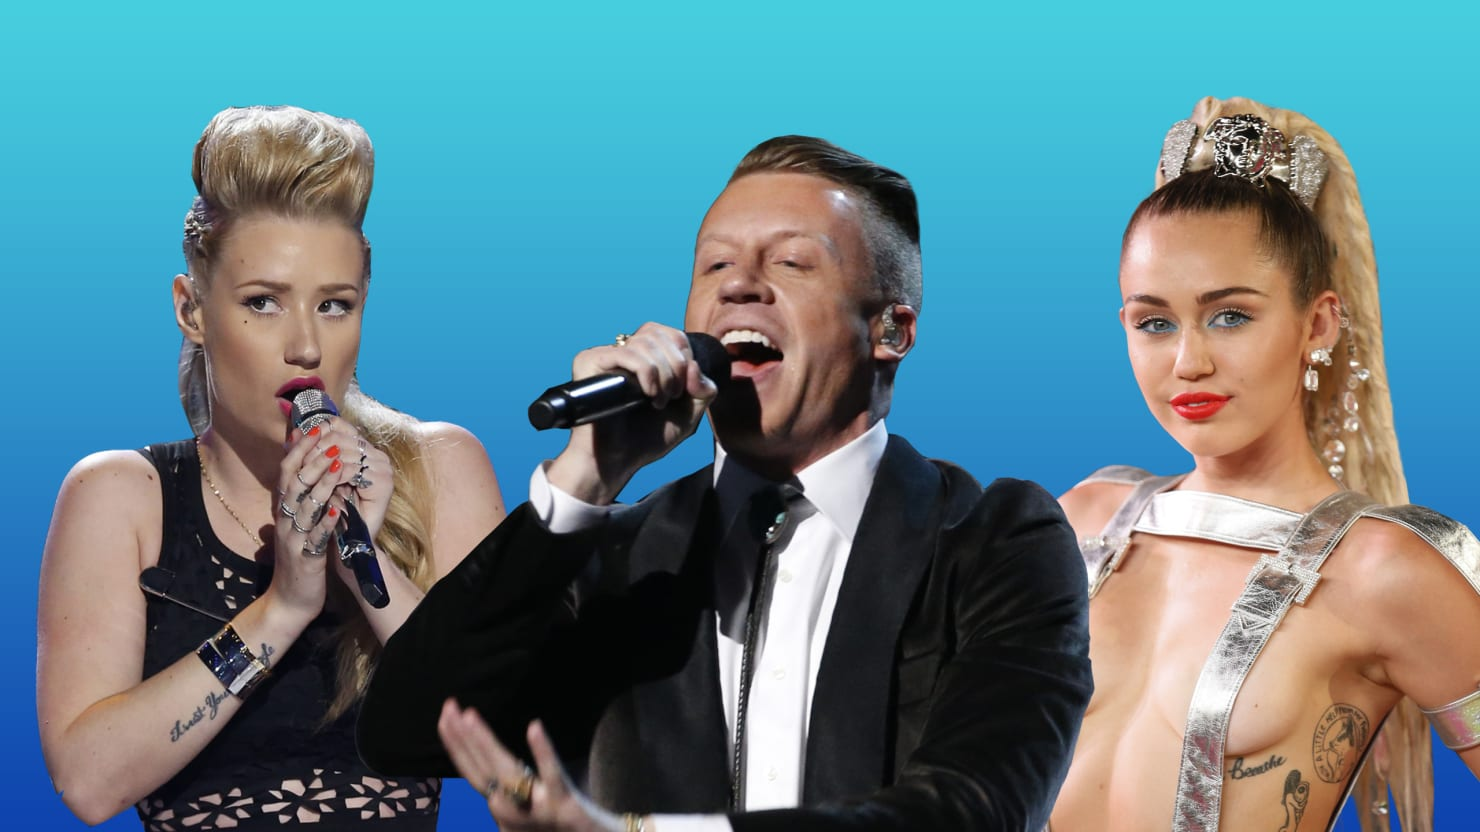 Macklemore Is Right About Iggy and Miley's Racial Tourism, but This Isn't About Him